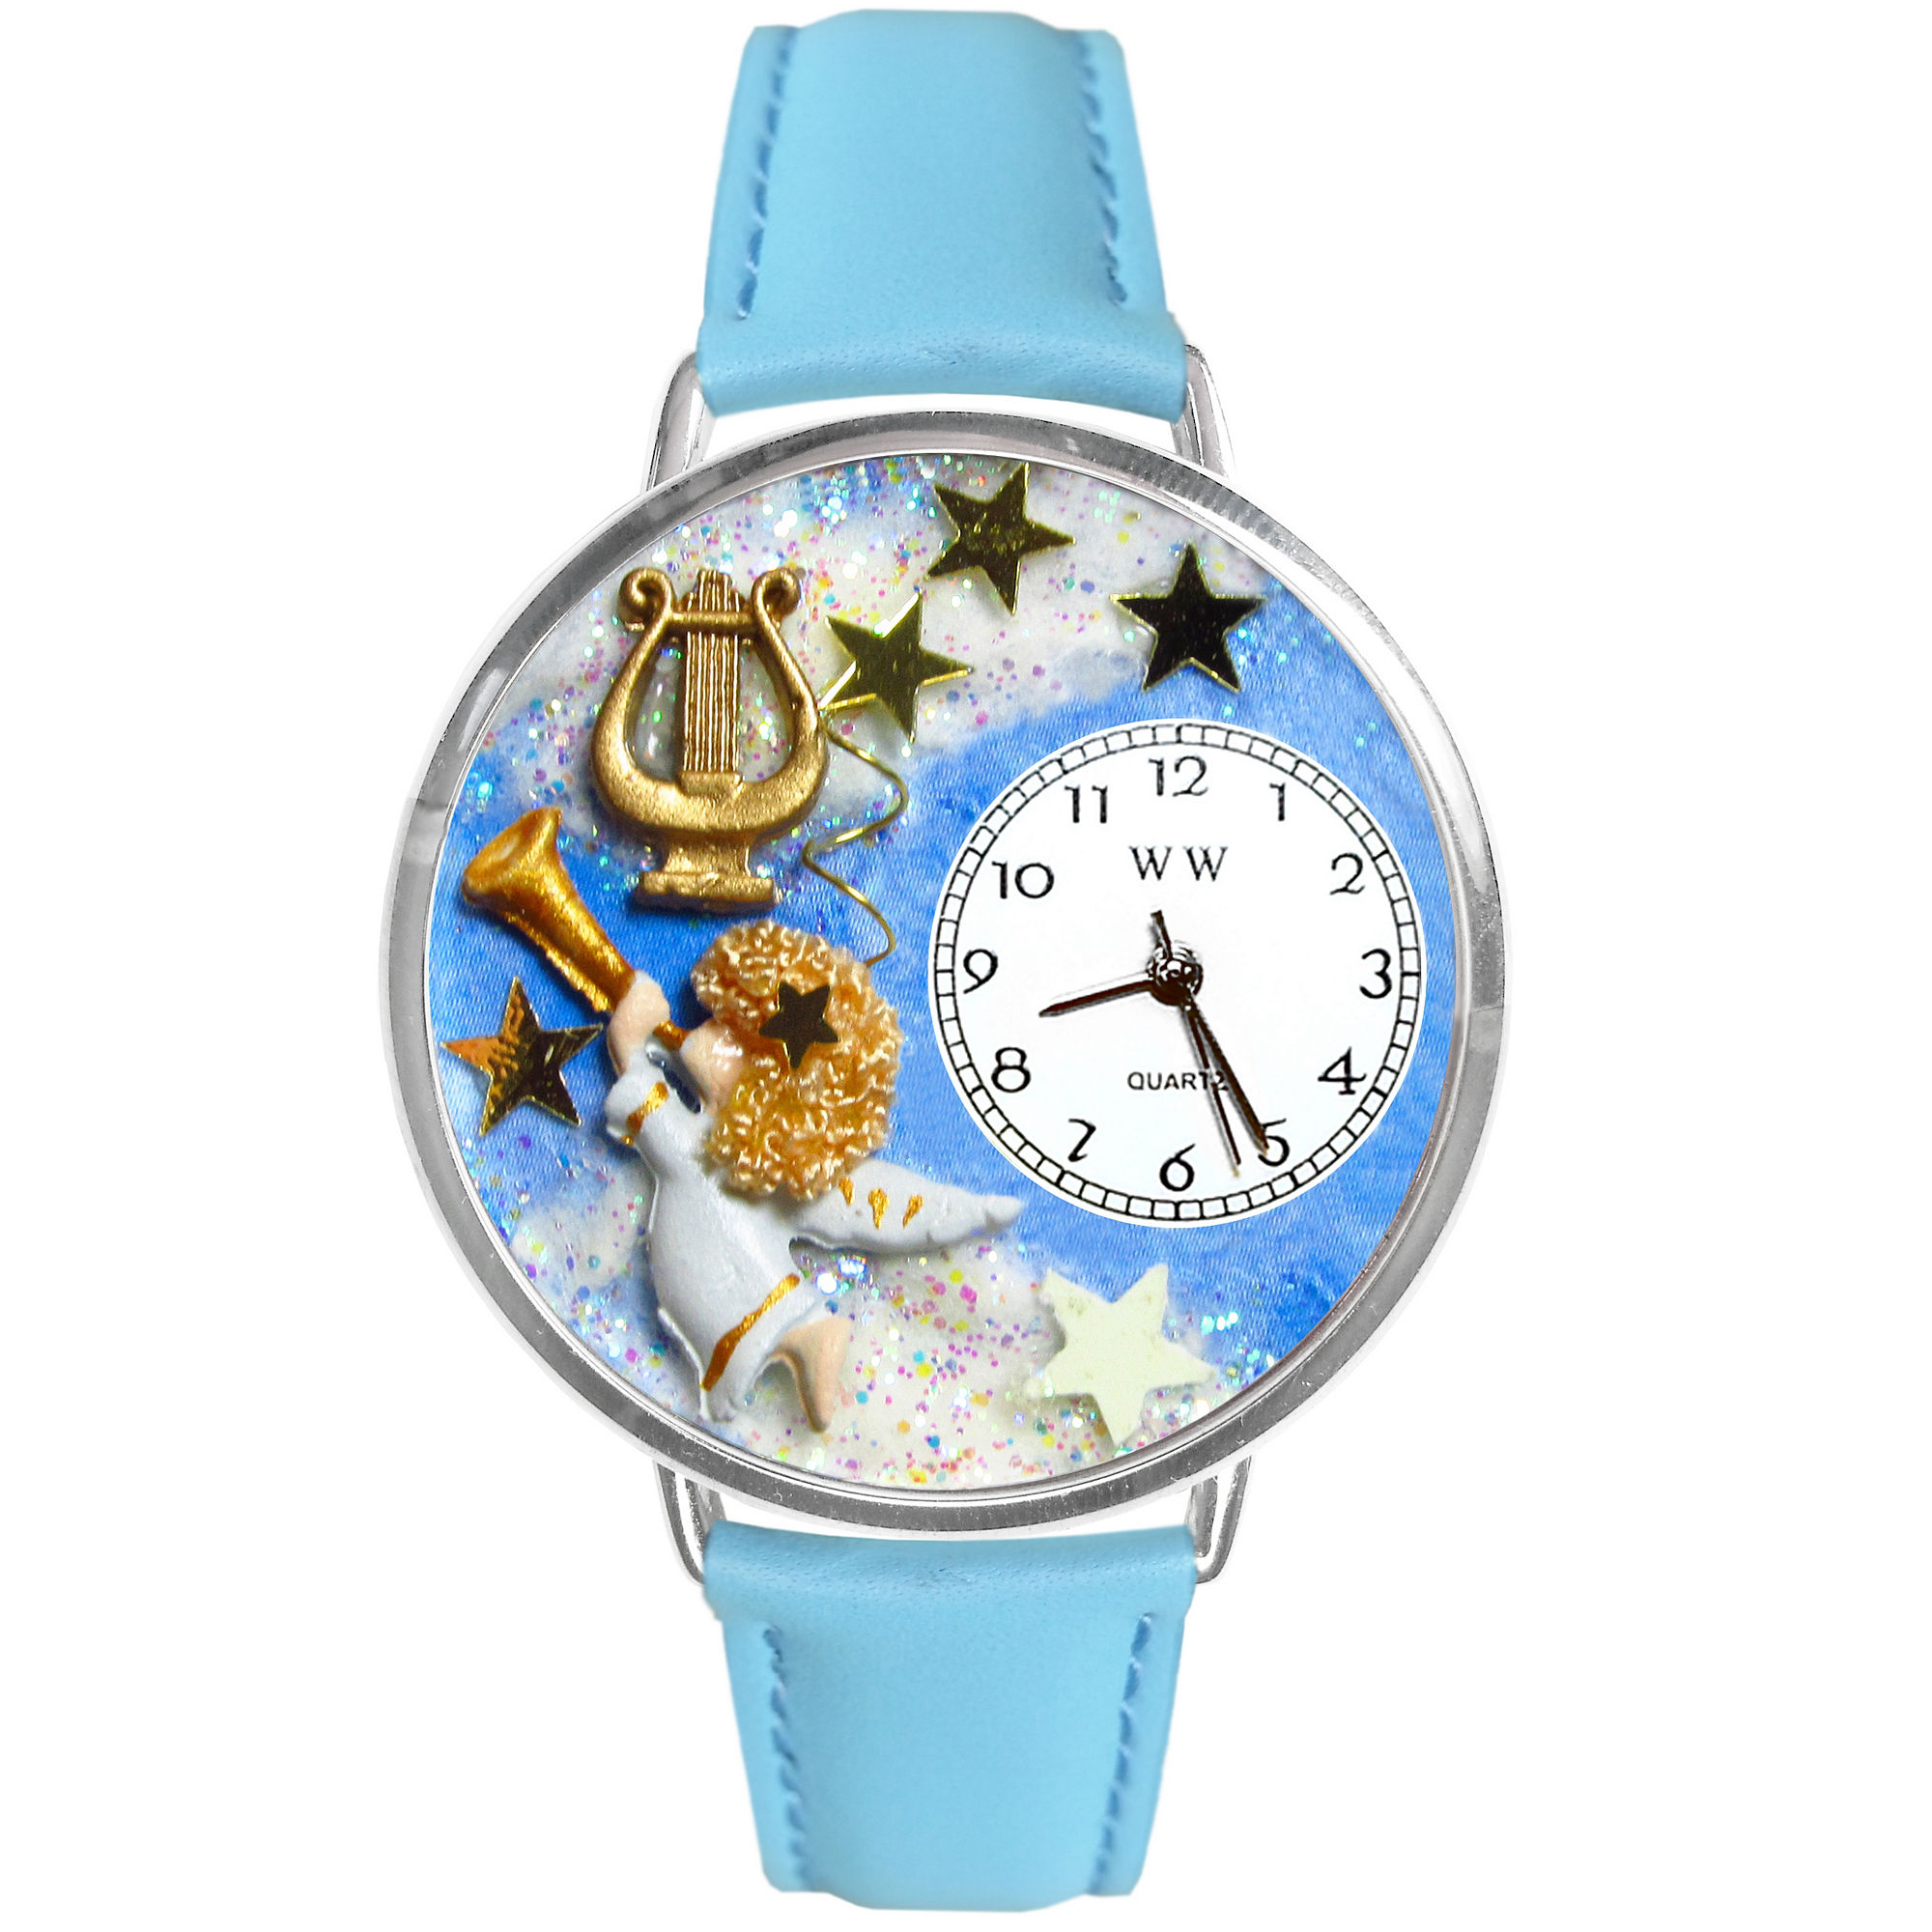 Whimsical Watches Personalized Angel Womens Silver-Tone Bezel Light Blue Leather Strap Watch